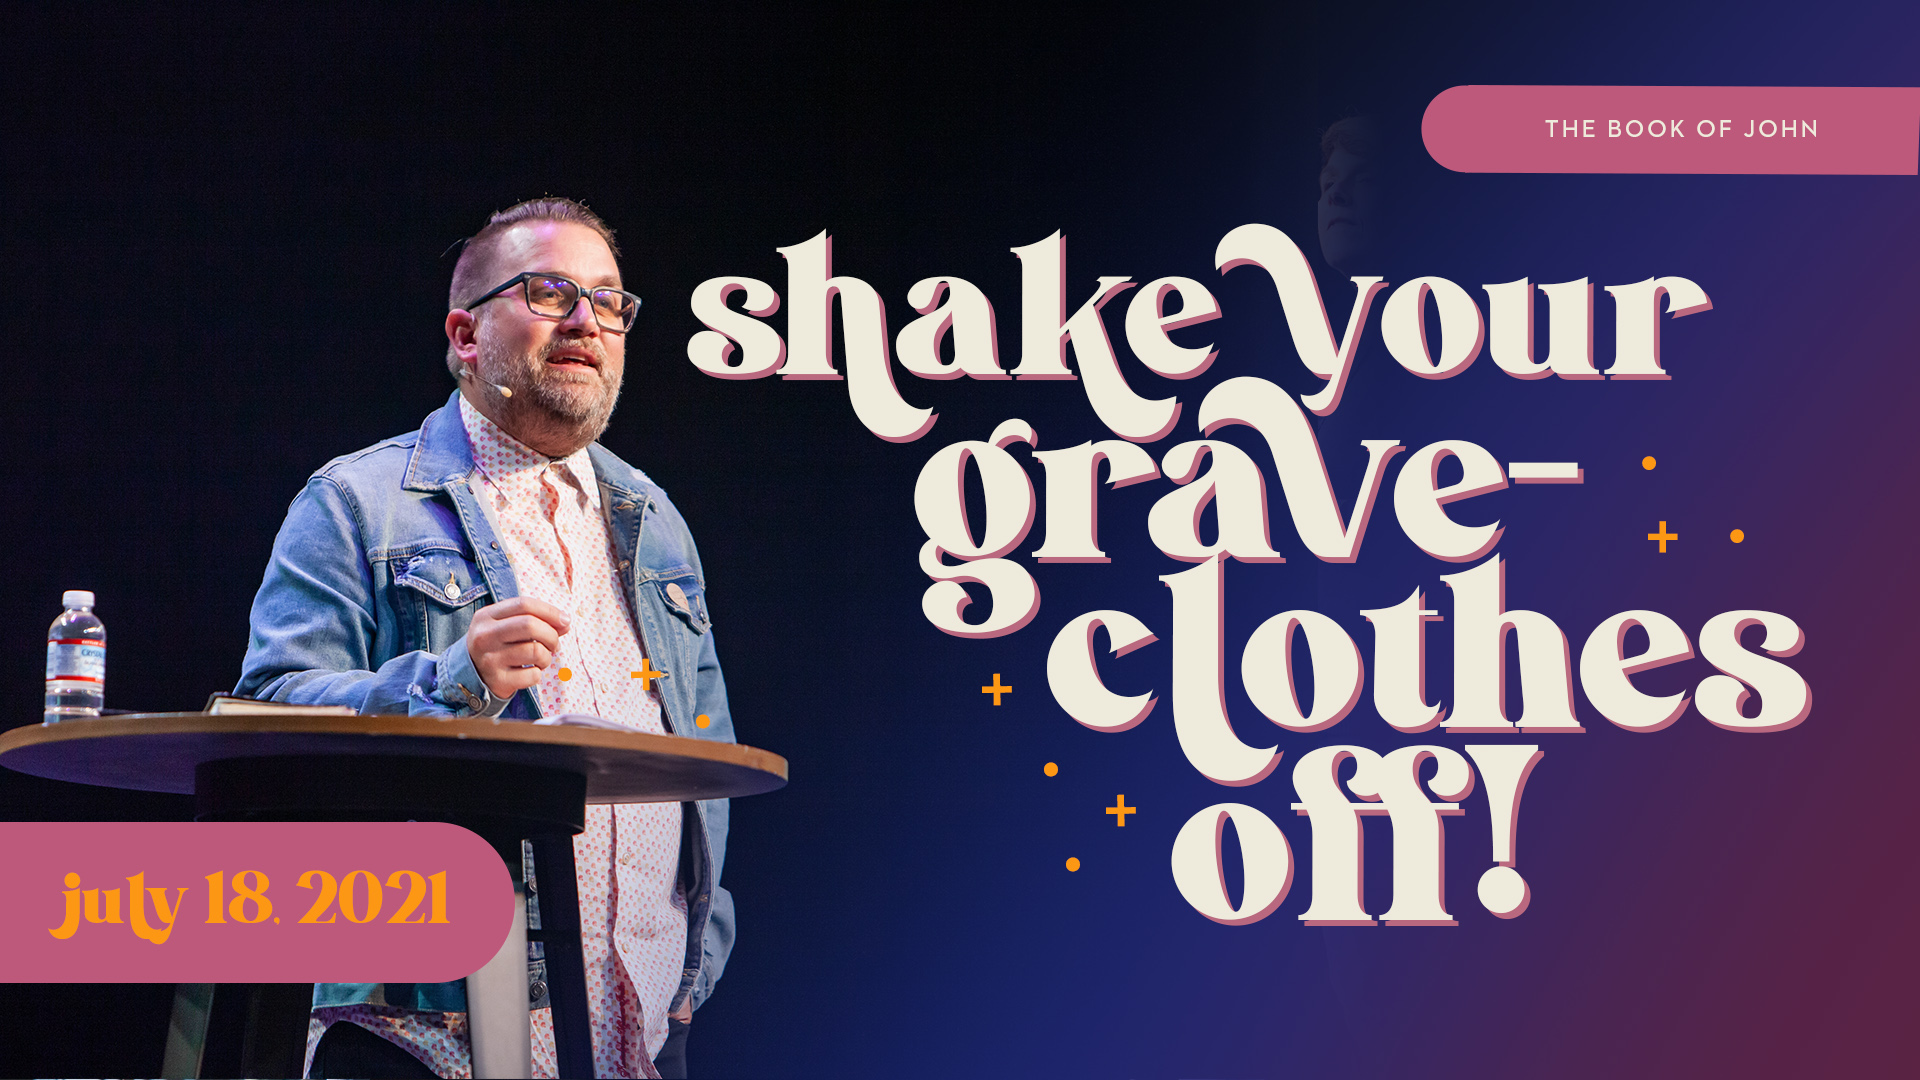 Shake Your Graveclothes off - Death to Life